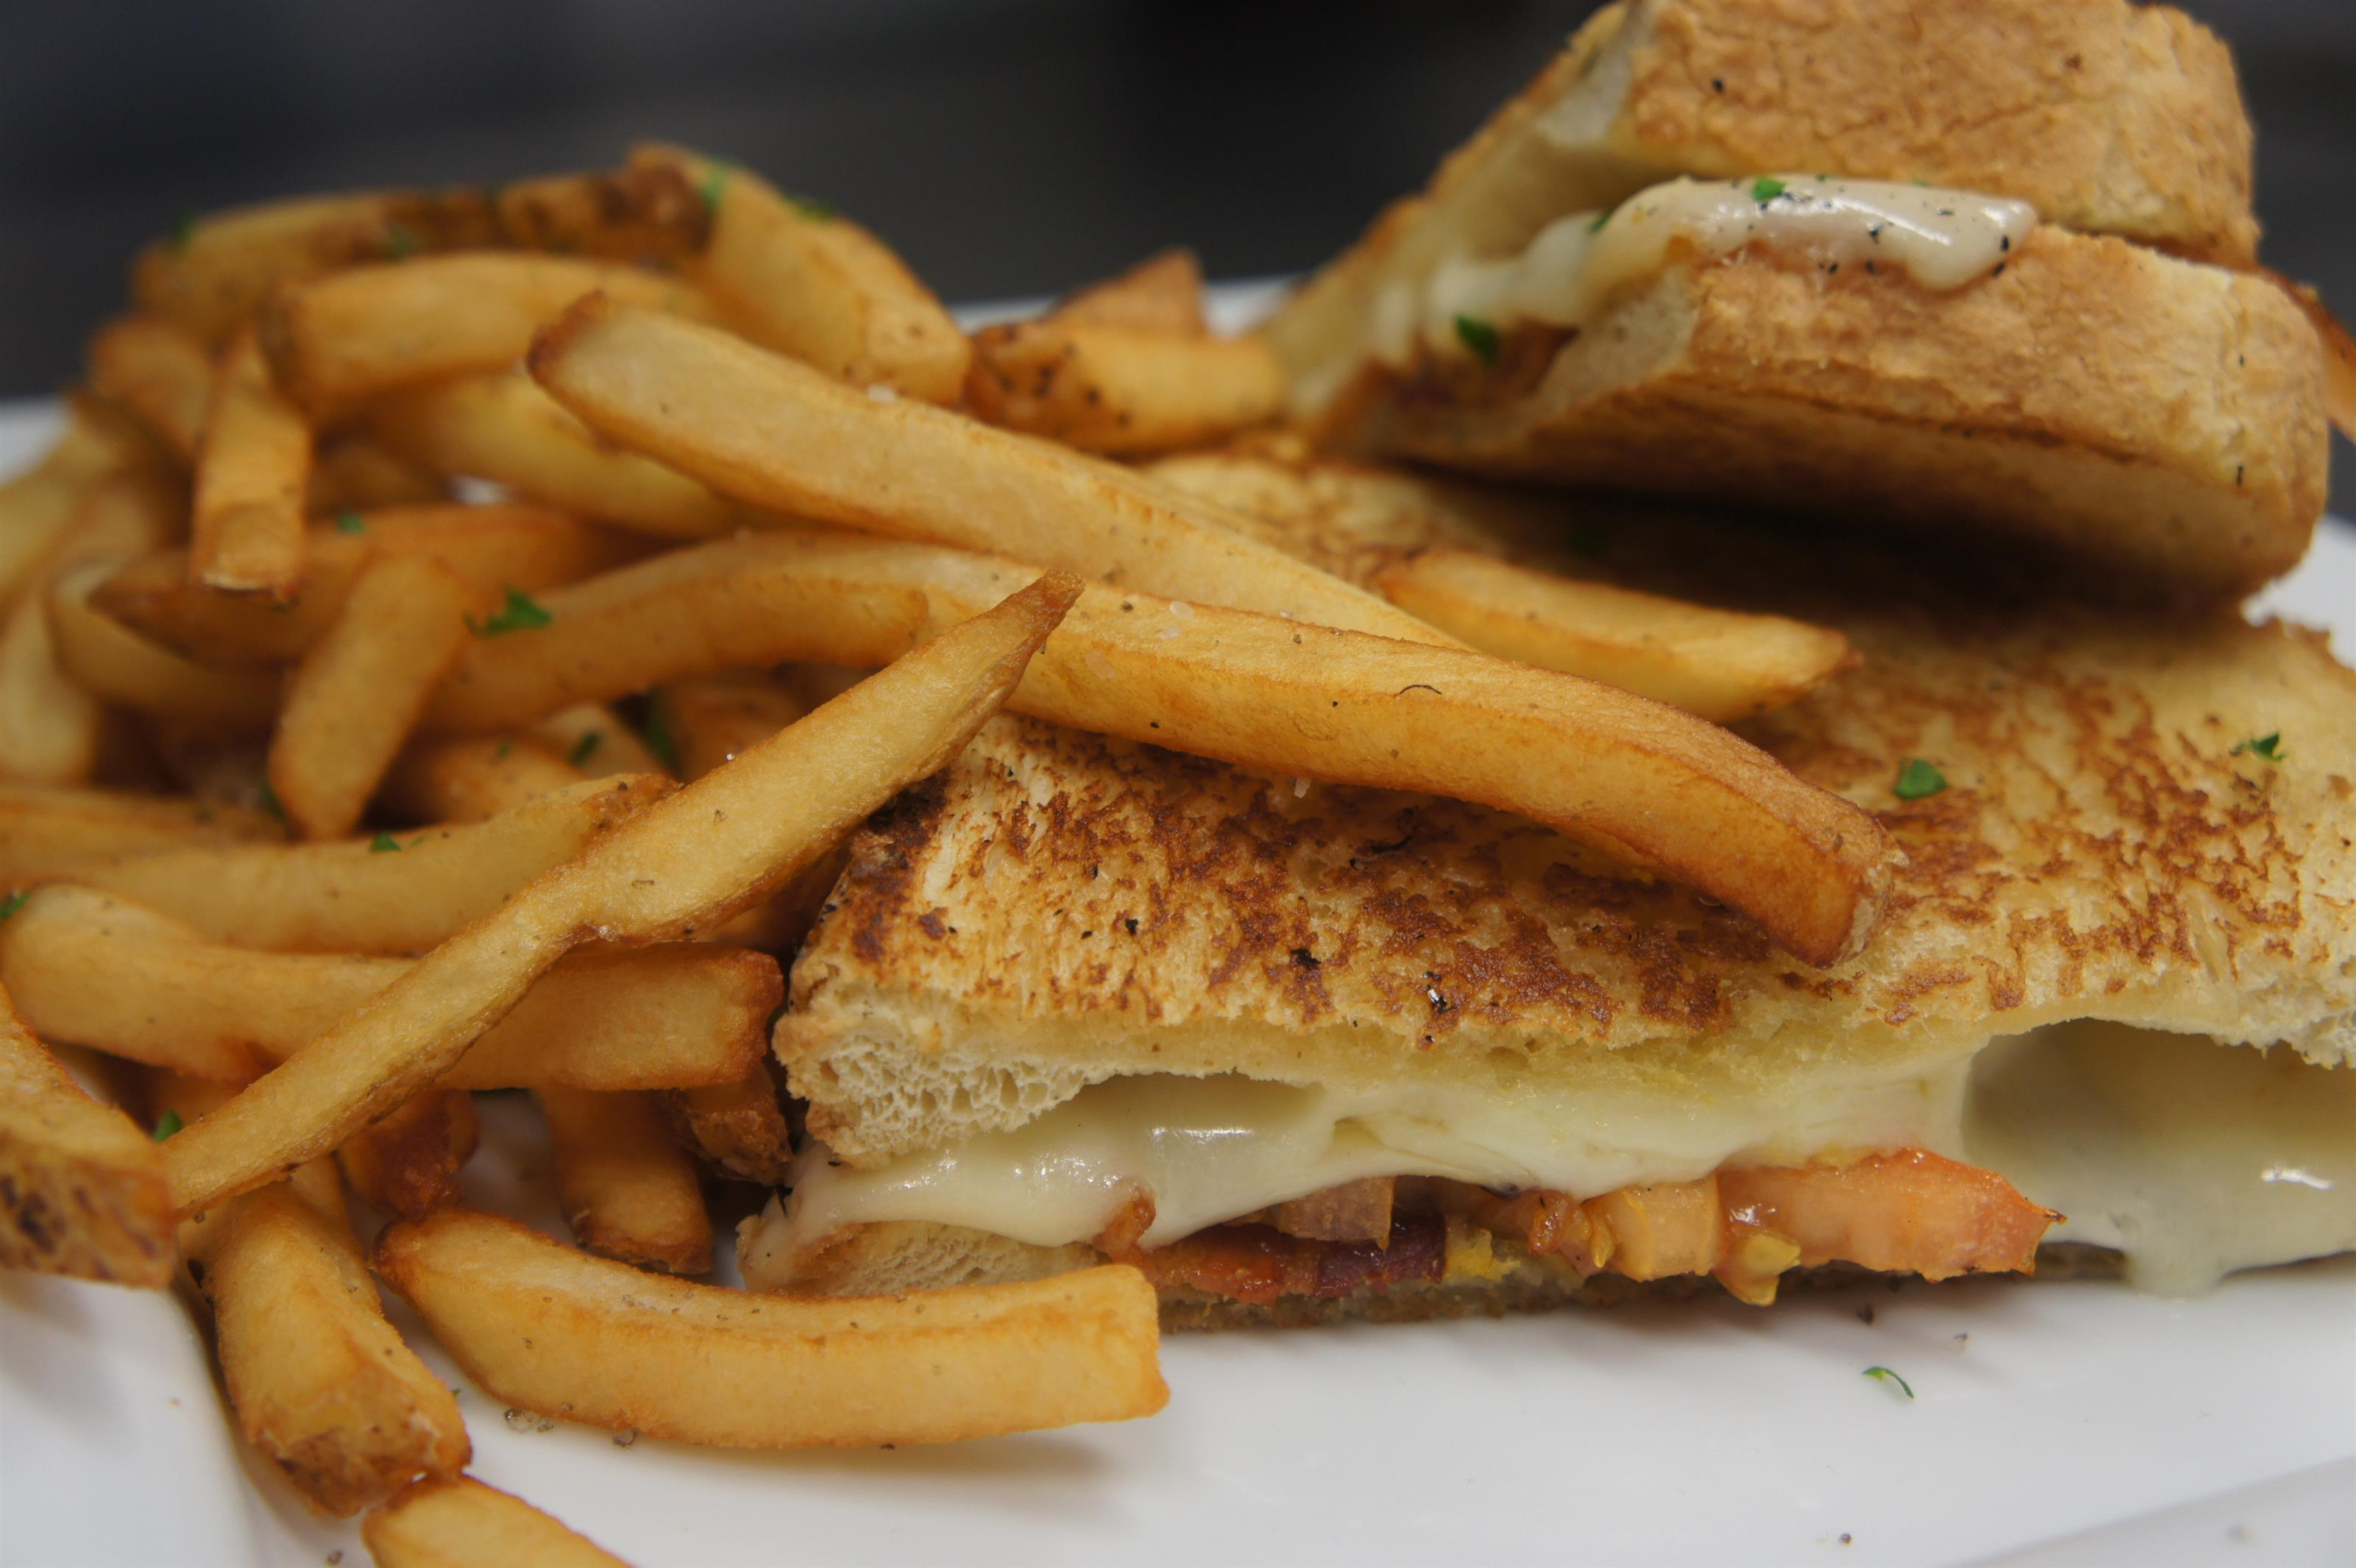 Grilled cheese with bacon served with fries